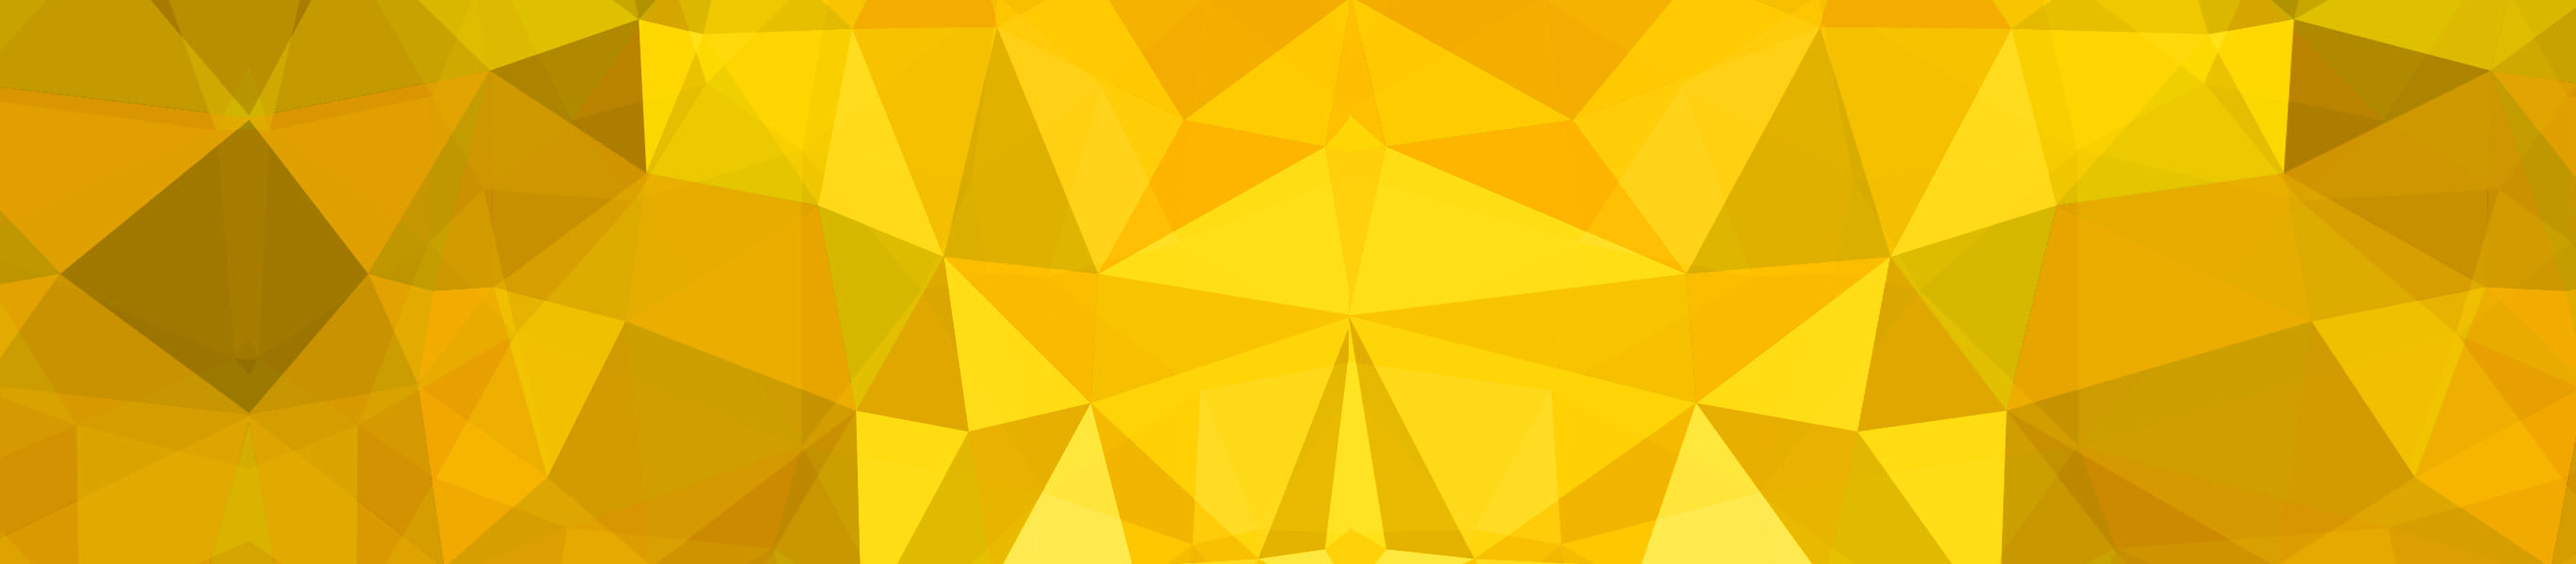 Yellow Polygons BG